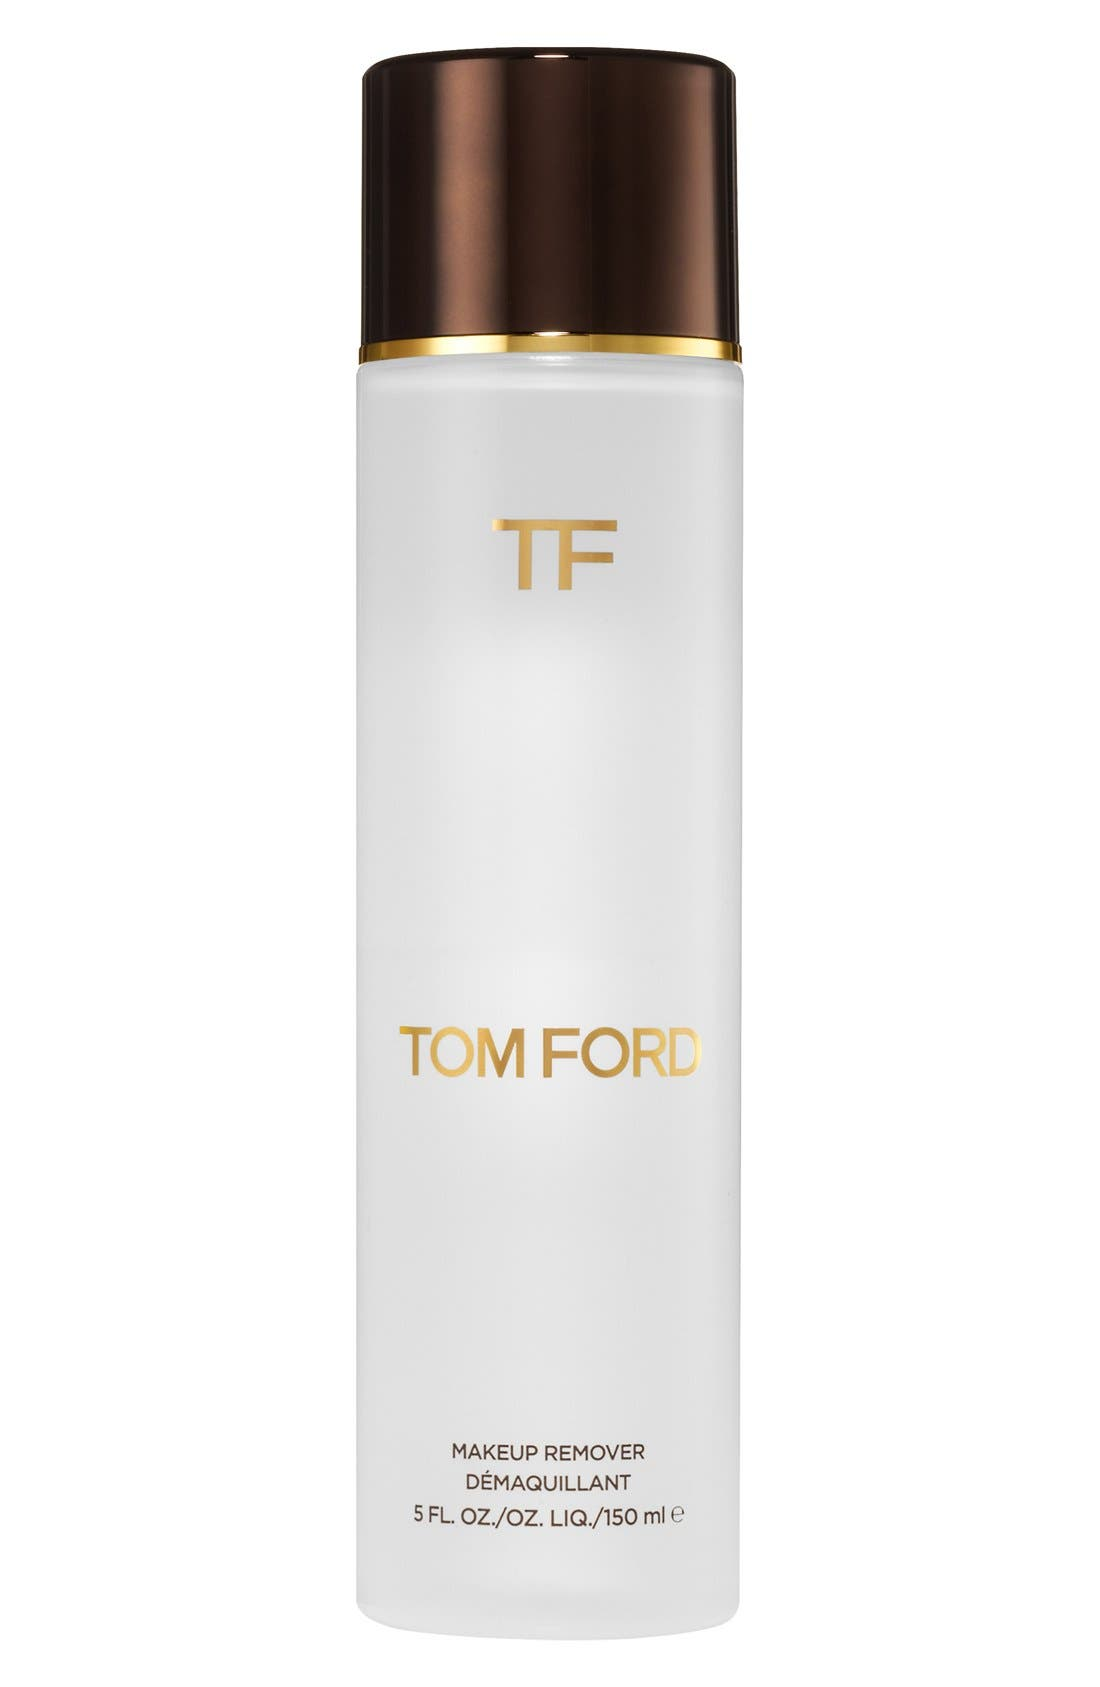 Tom Ford Makeup Remover